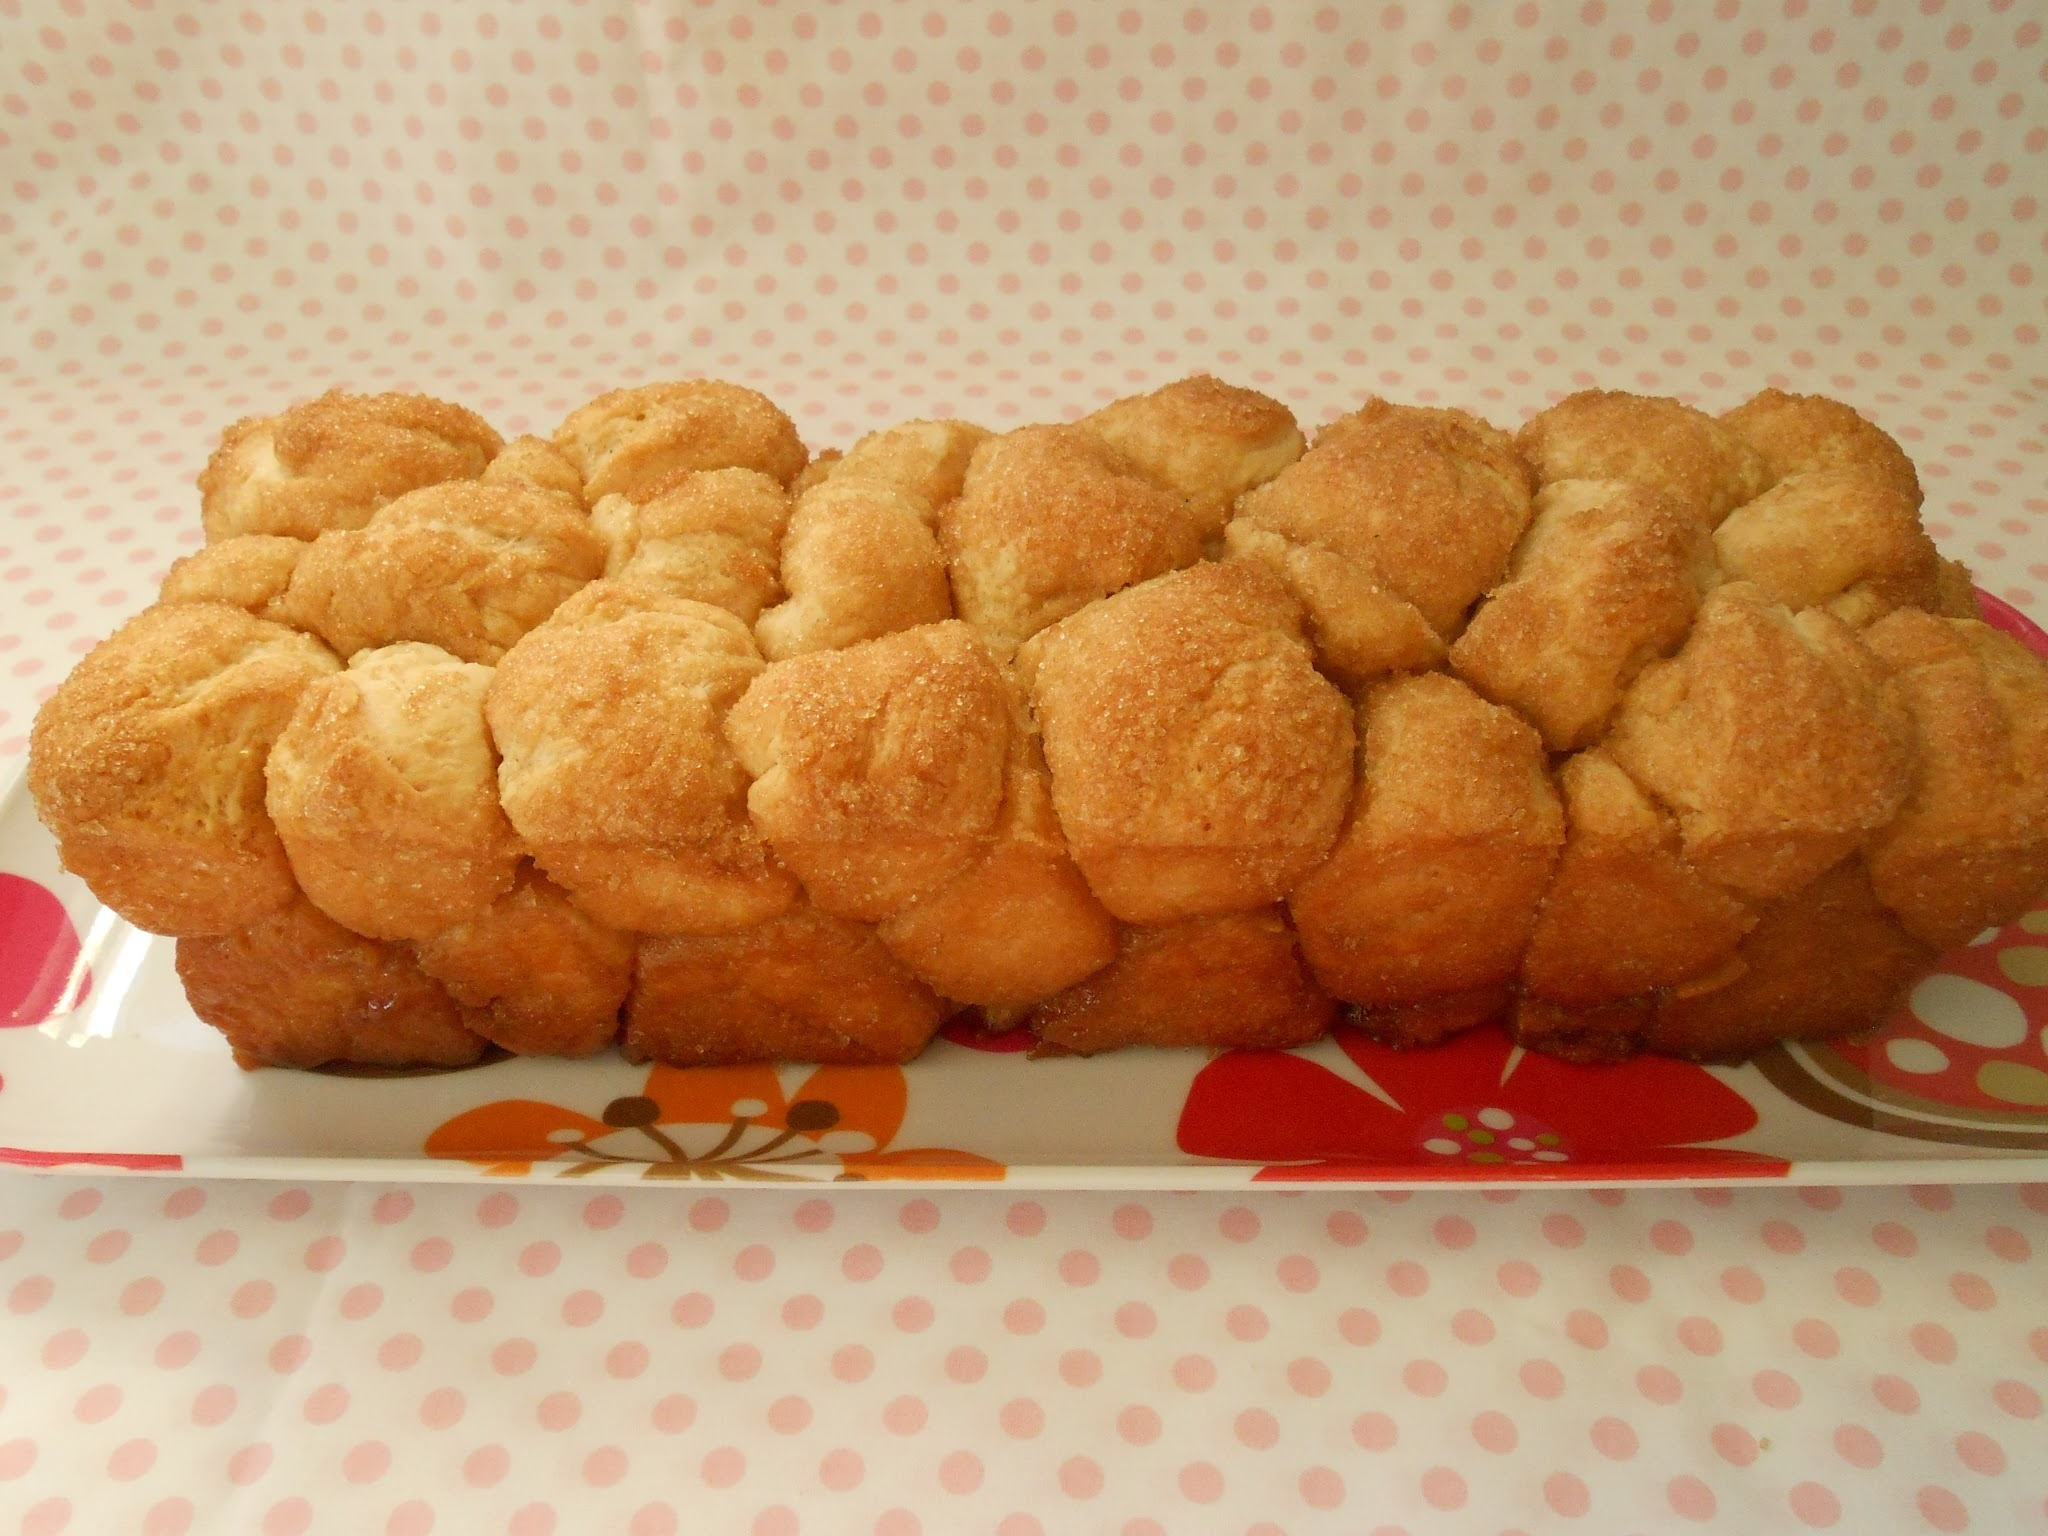 Monkey Bread (Pan de mono)